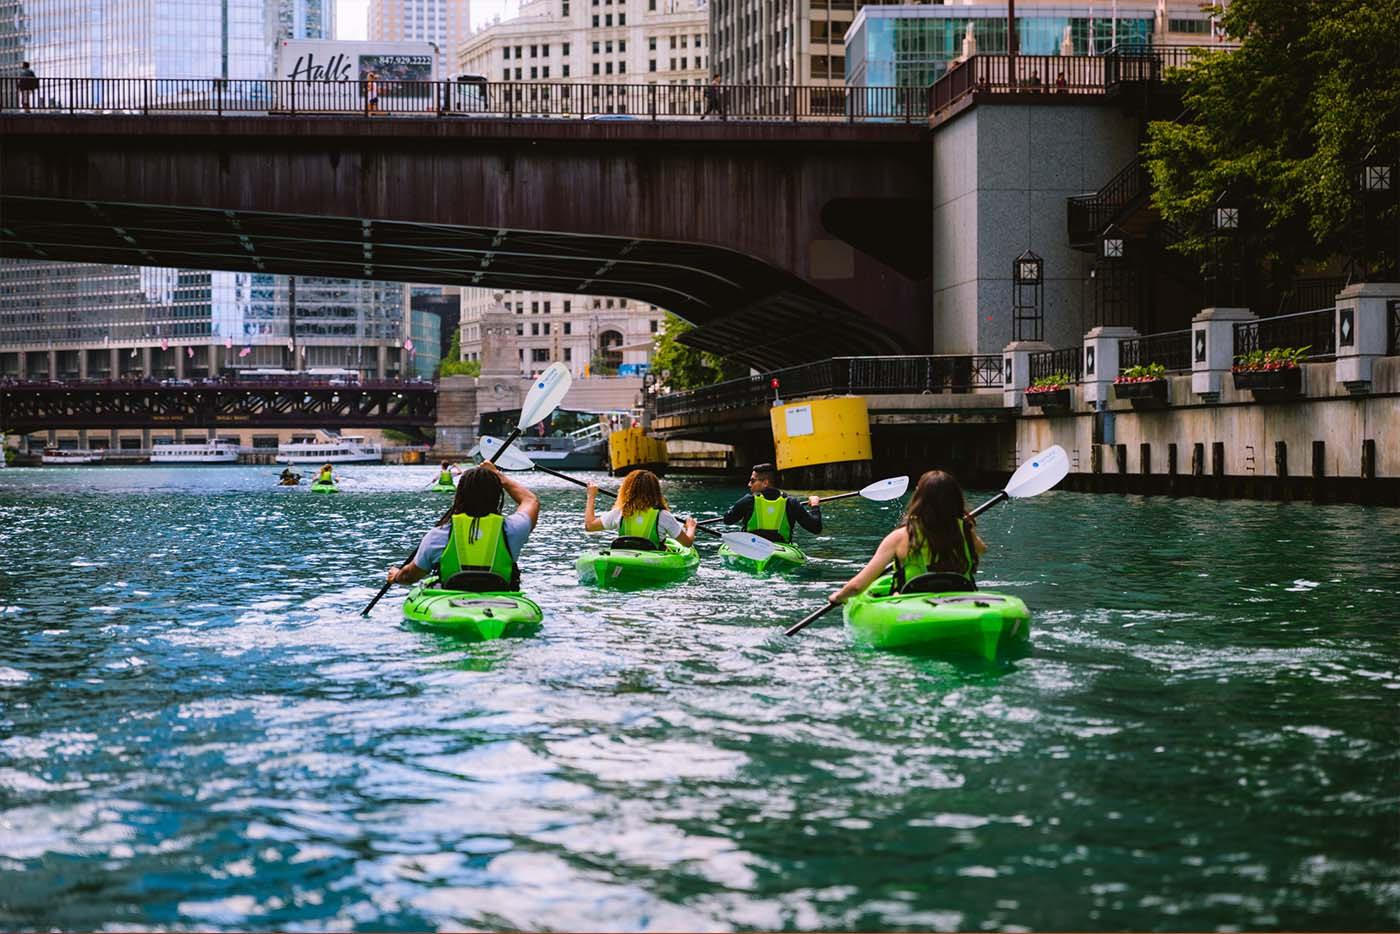 A group of people Kayaking down the river in Chicago